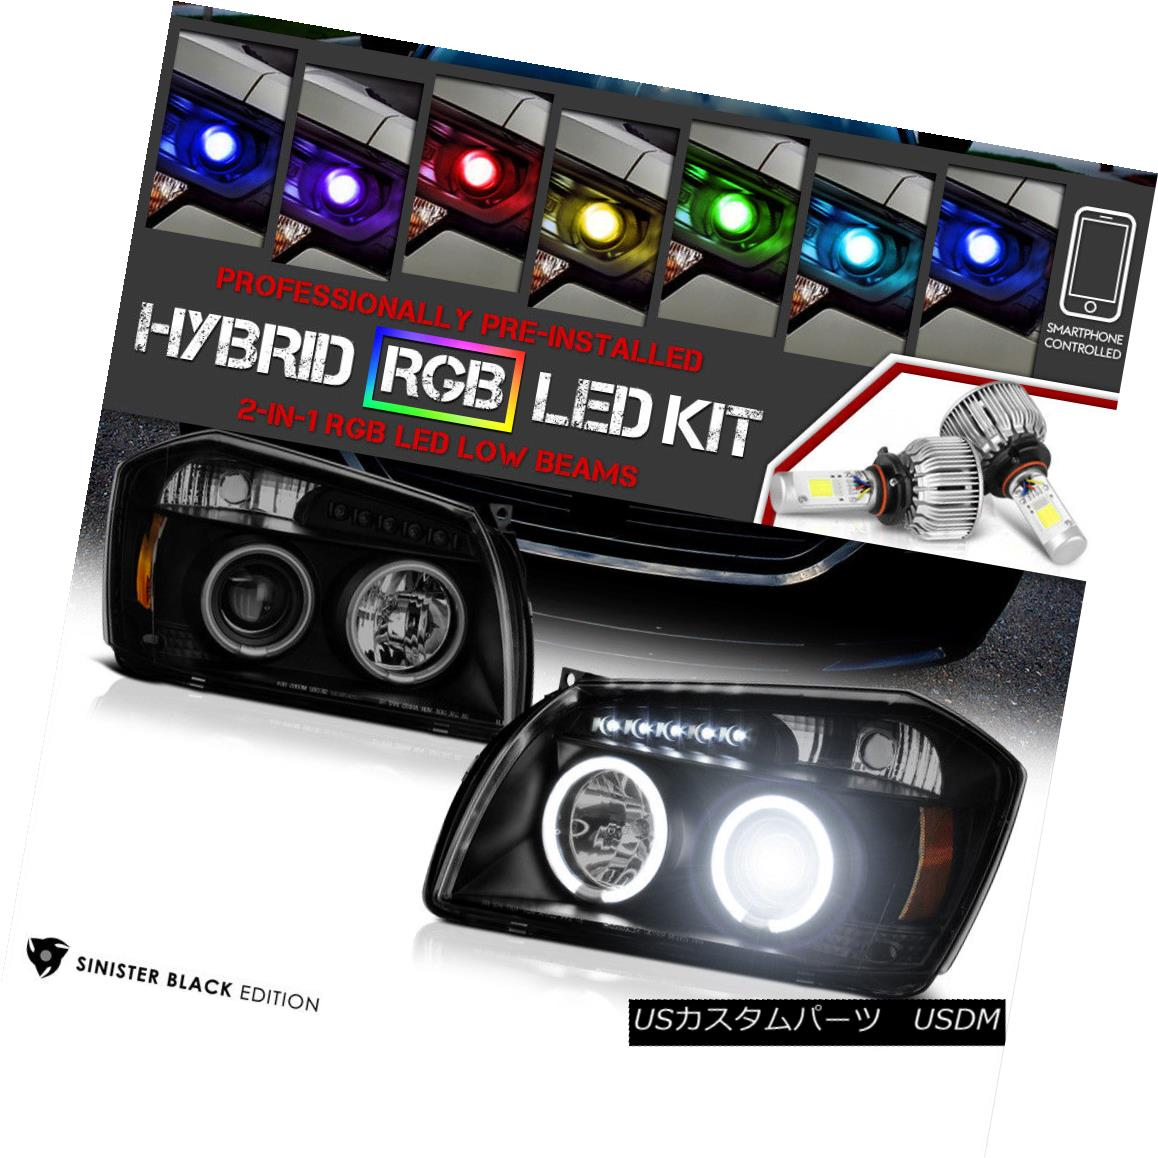 ヘッドライト [Color Strobe LED Low Beam] 05-07 Dodge Magnum SXT SE R/T CCFL Headlights PAIR [カラーストロボLEDロービーム] 05-07 Dodge Magnum SXT SE R / T CCFLヘッドライトペア